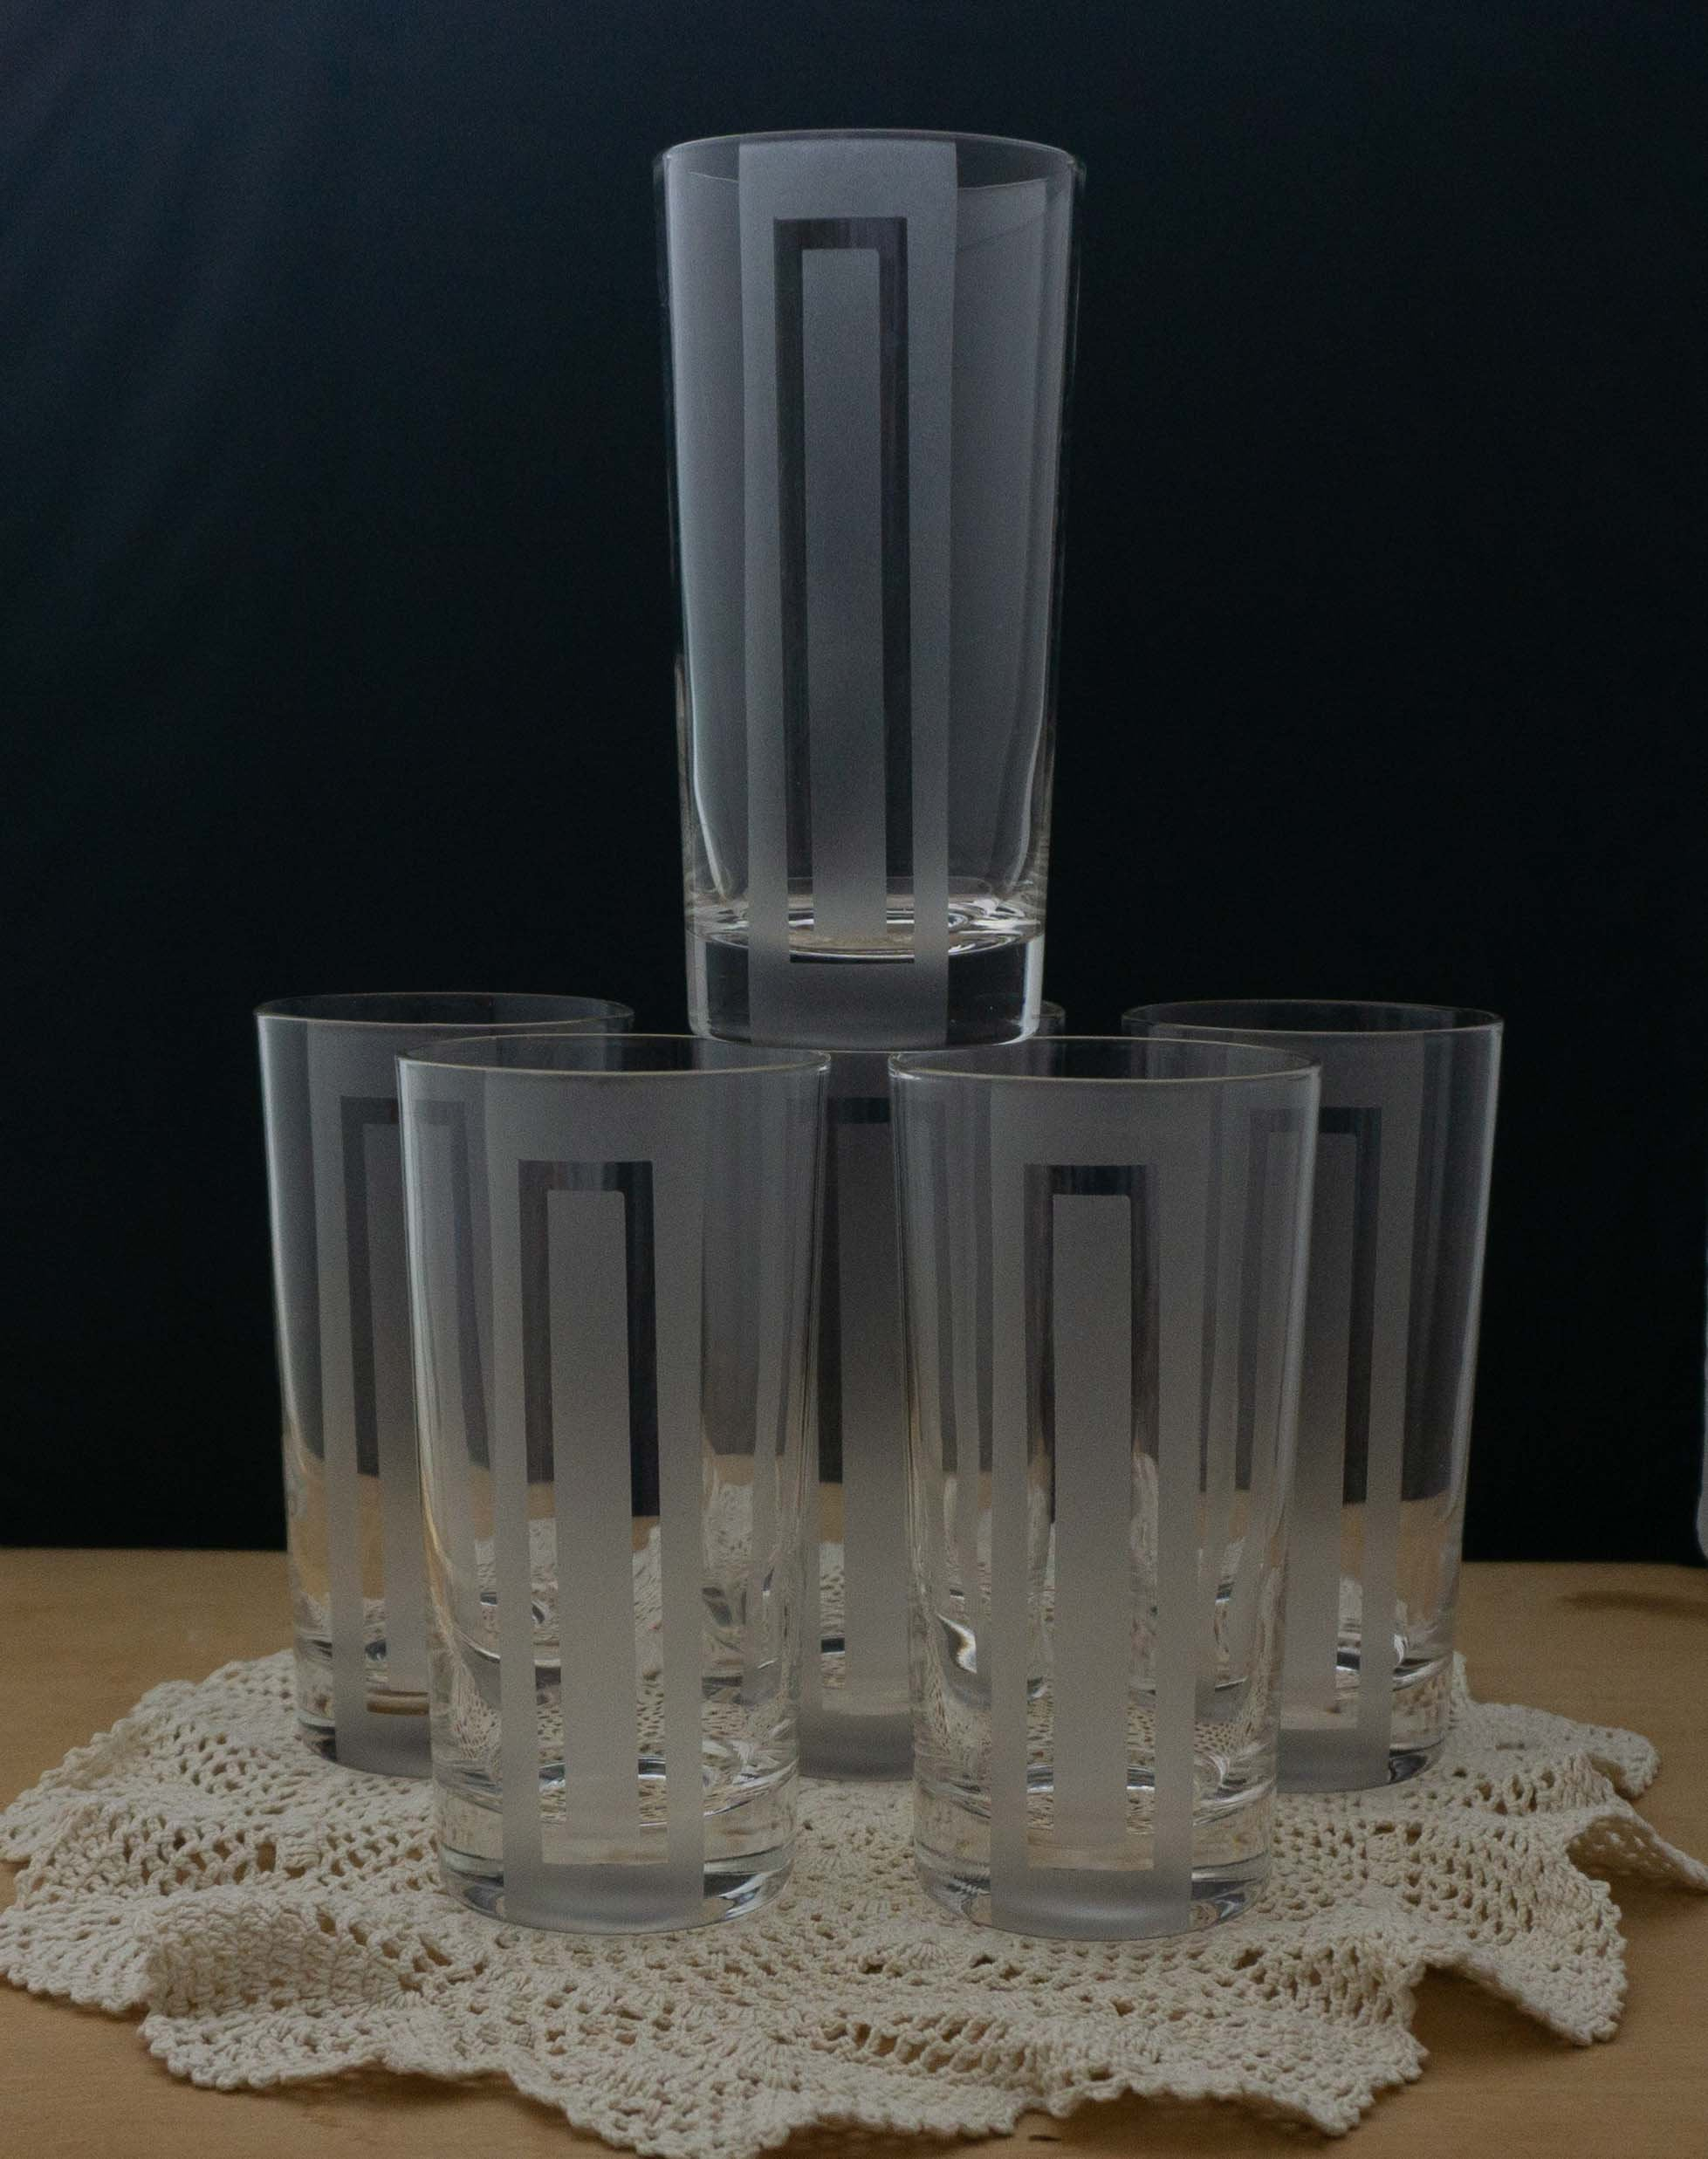 SIX Vintage Highball Zombie 12 Ounce Mid Century Modern Glasses Unmarked Clear Etched Barware